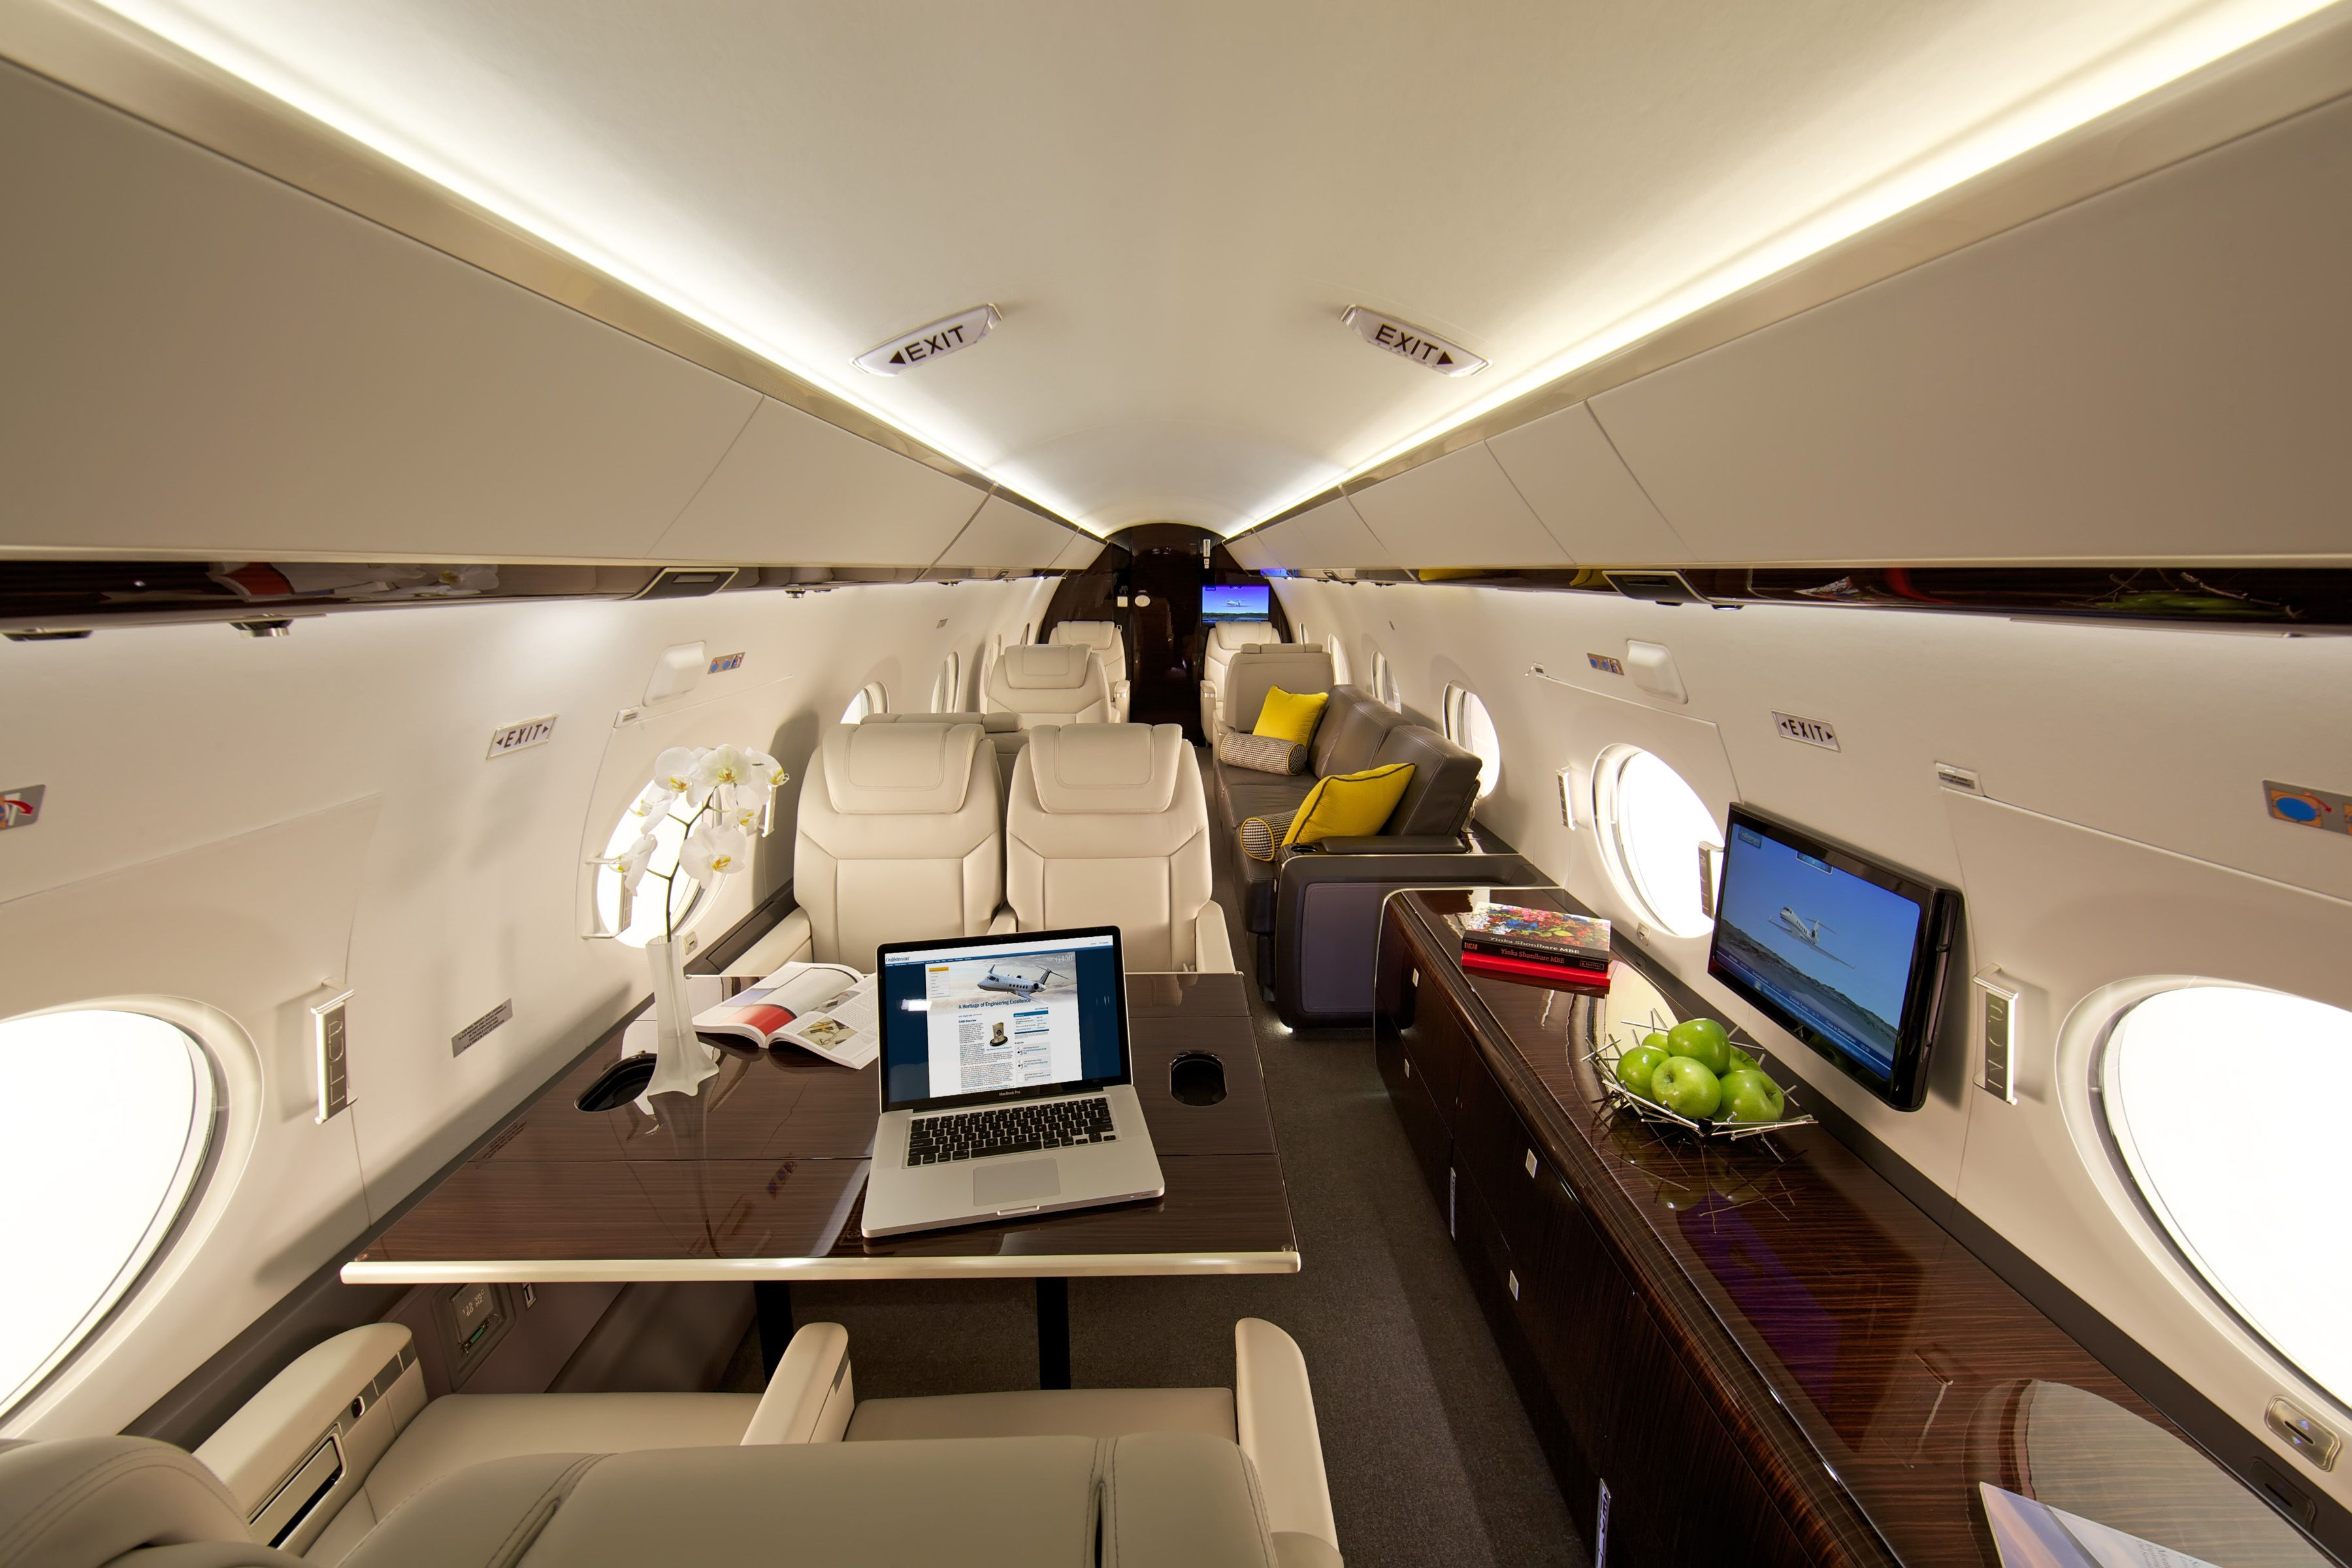 the gulfstream g650 for sale is a twin engine business jet airplane produced by gulfstream